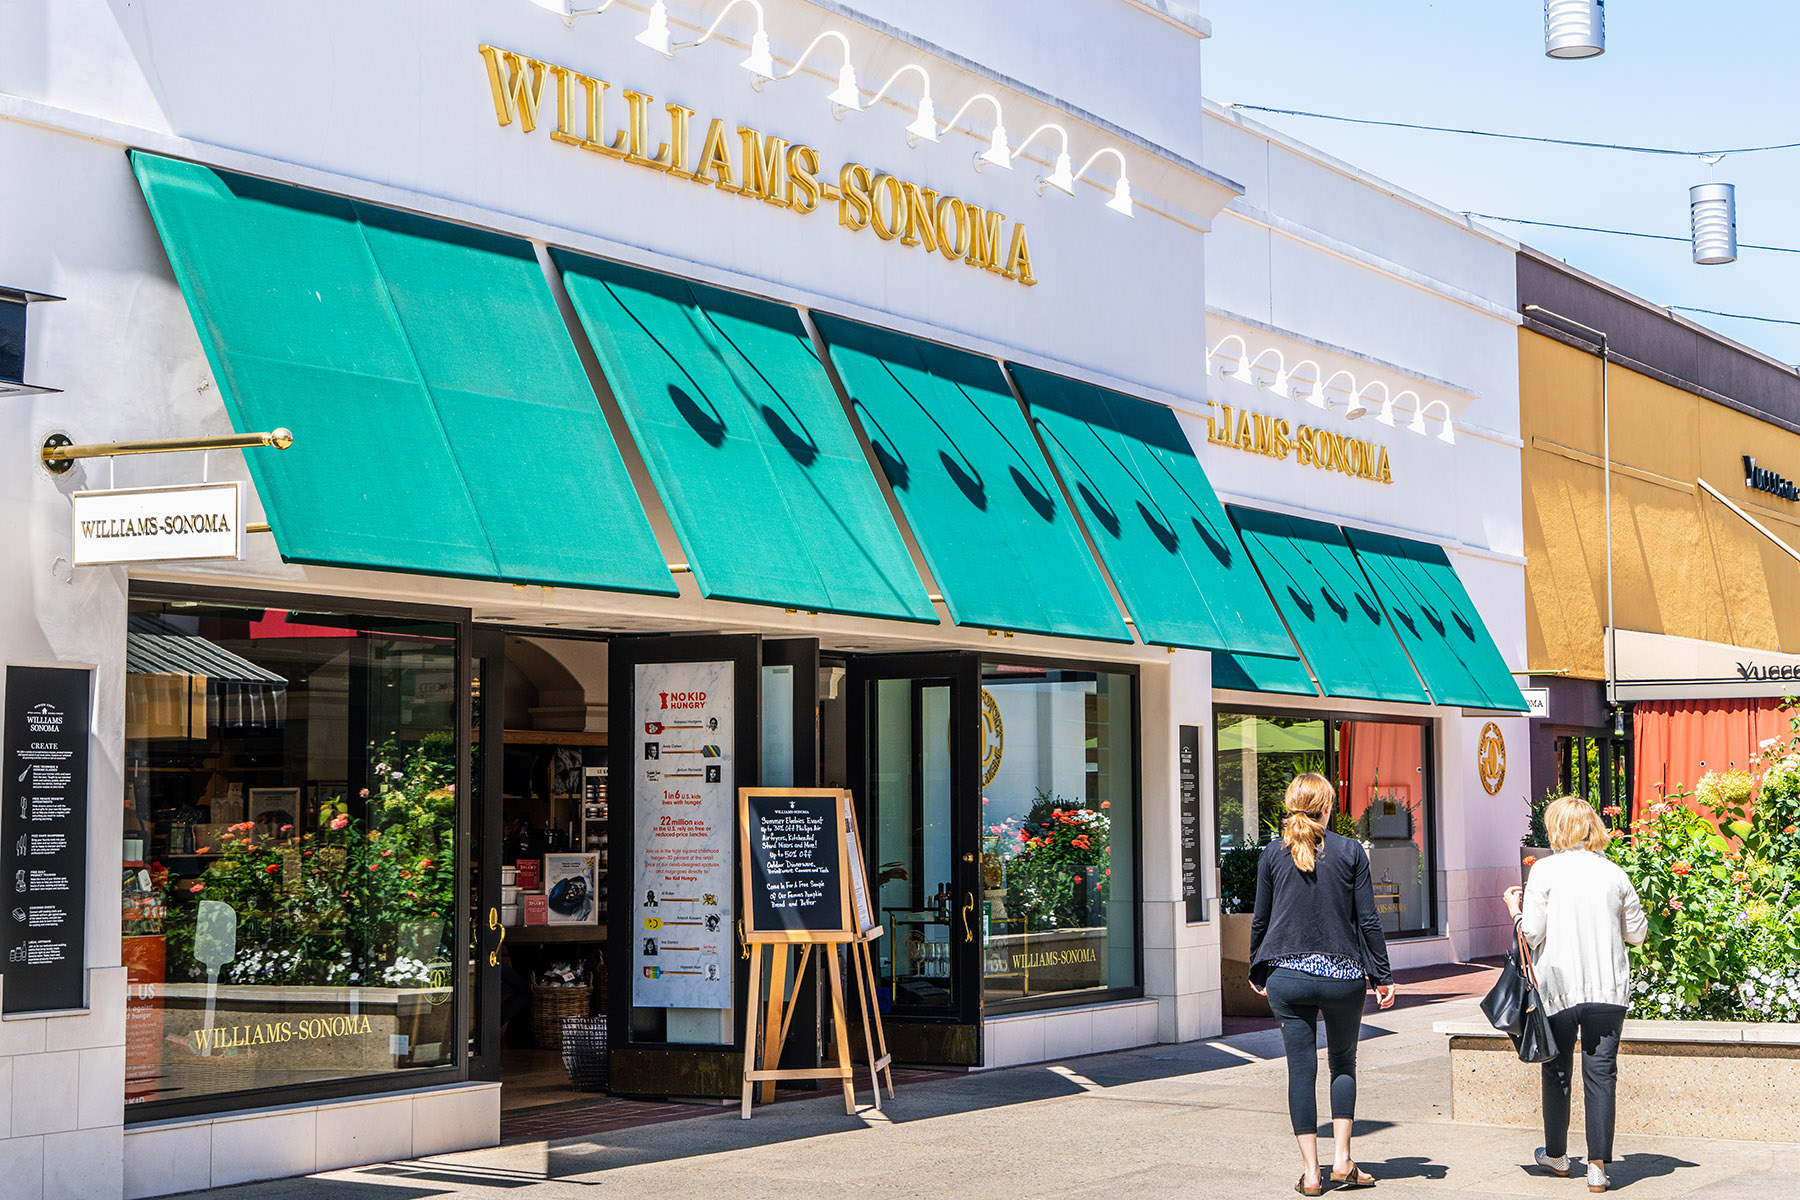 Home furnishings retailer Williams-Sonoma Inc. plans to close up to 25% of its stores, reflecting a widespread shift to e-commerce sales. (Getty Images)